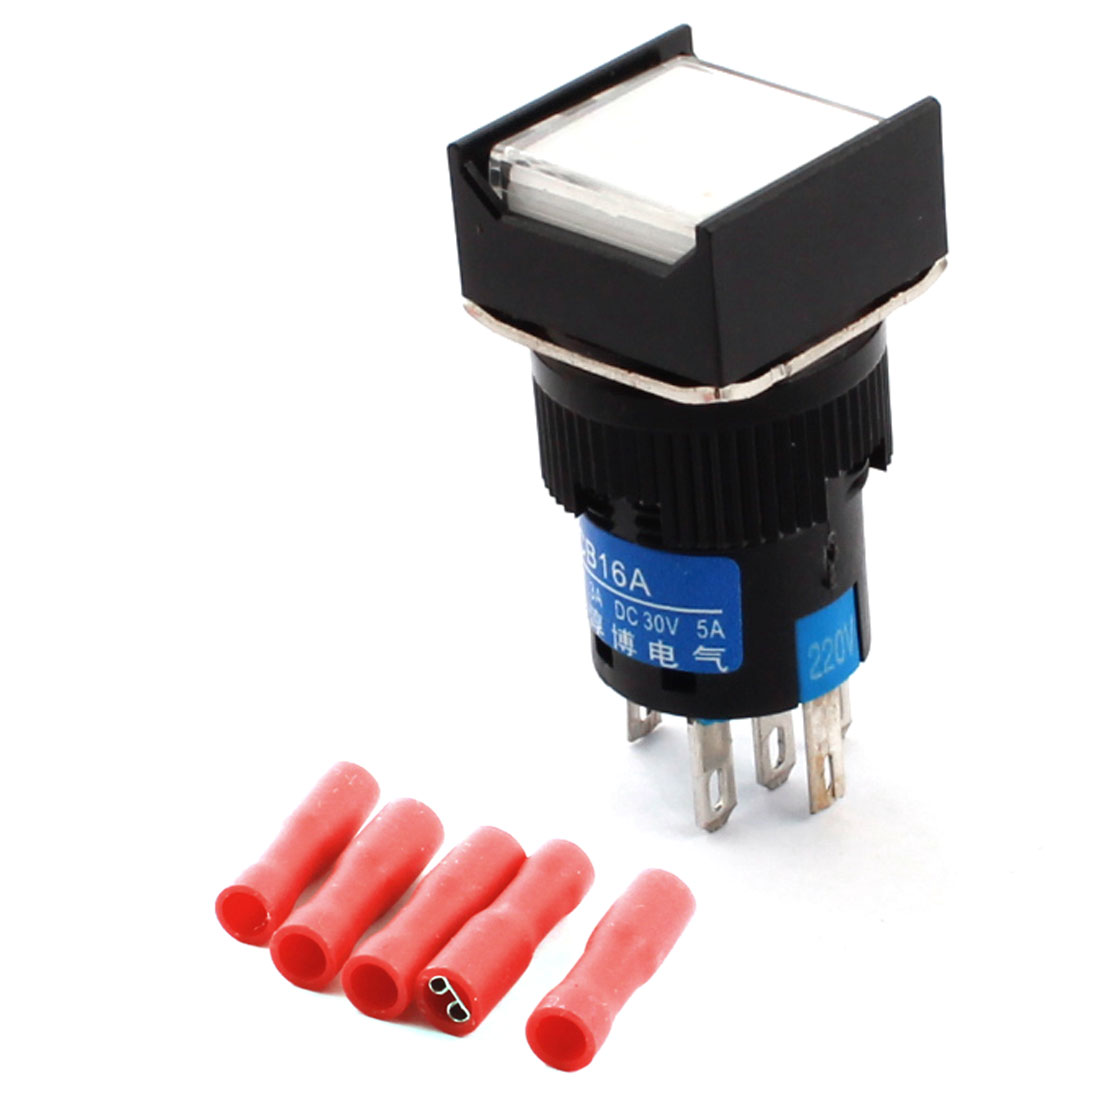 AC 220V White Pilot Lamp 5Pins 16mm Thread Panel Mounted SPDT Self Locking Square Head Pushbutton Switch + 5pcs Crimp Connectors